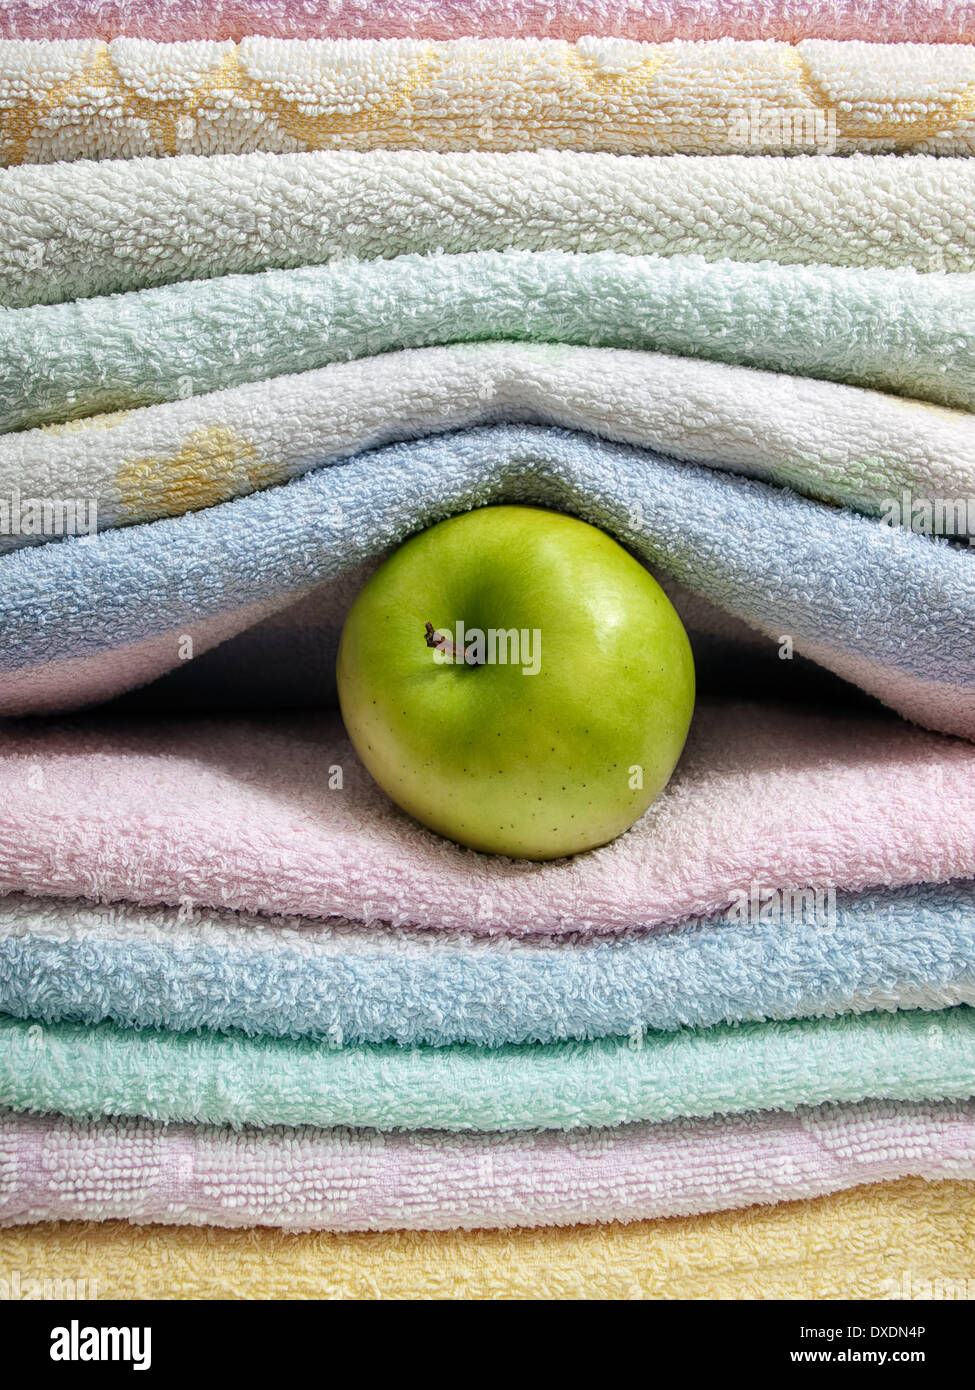 Apple between sorted towels as a concept of cleanliness and hygiene. - Stock Image